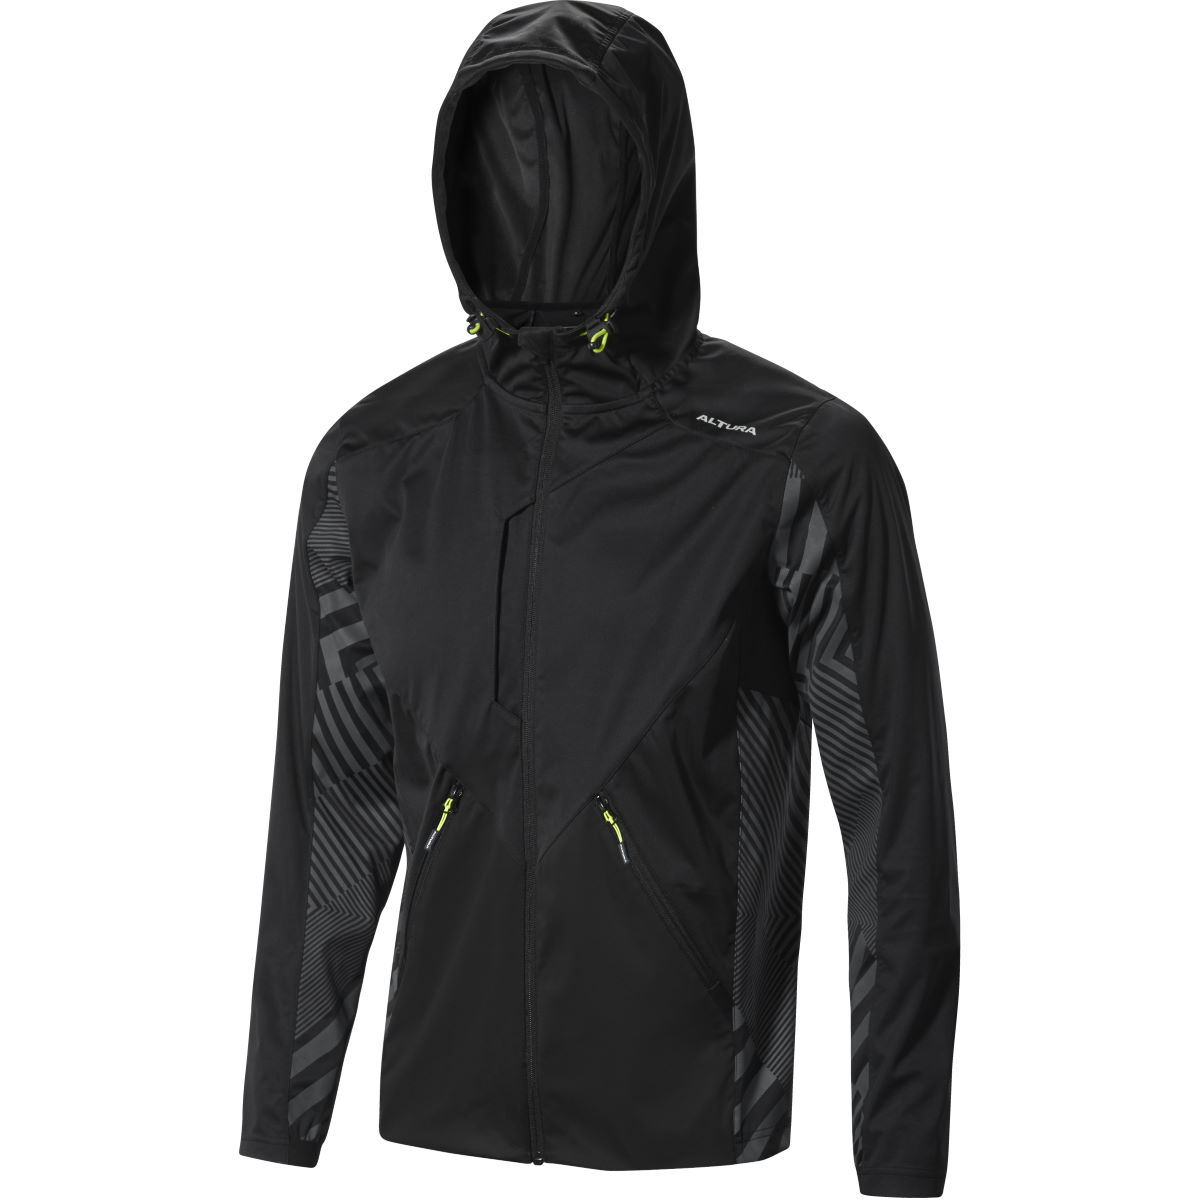 Veste Altura Three 60 (coupe-vent) - S Noir/Gris Coupe-vents vélo